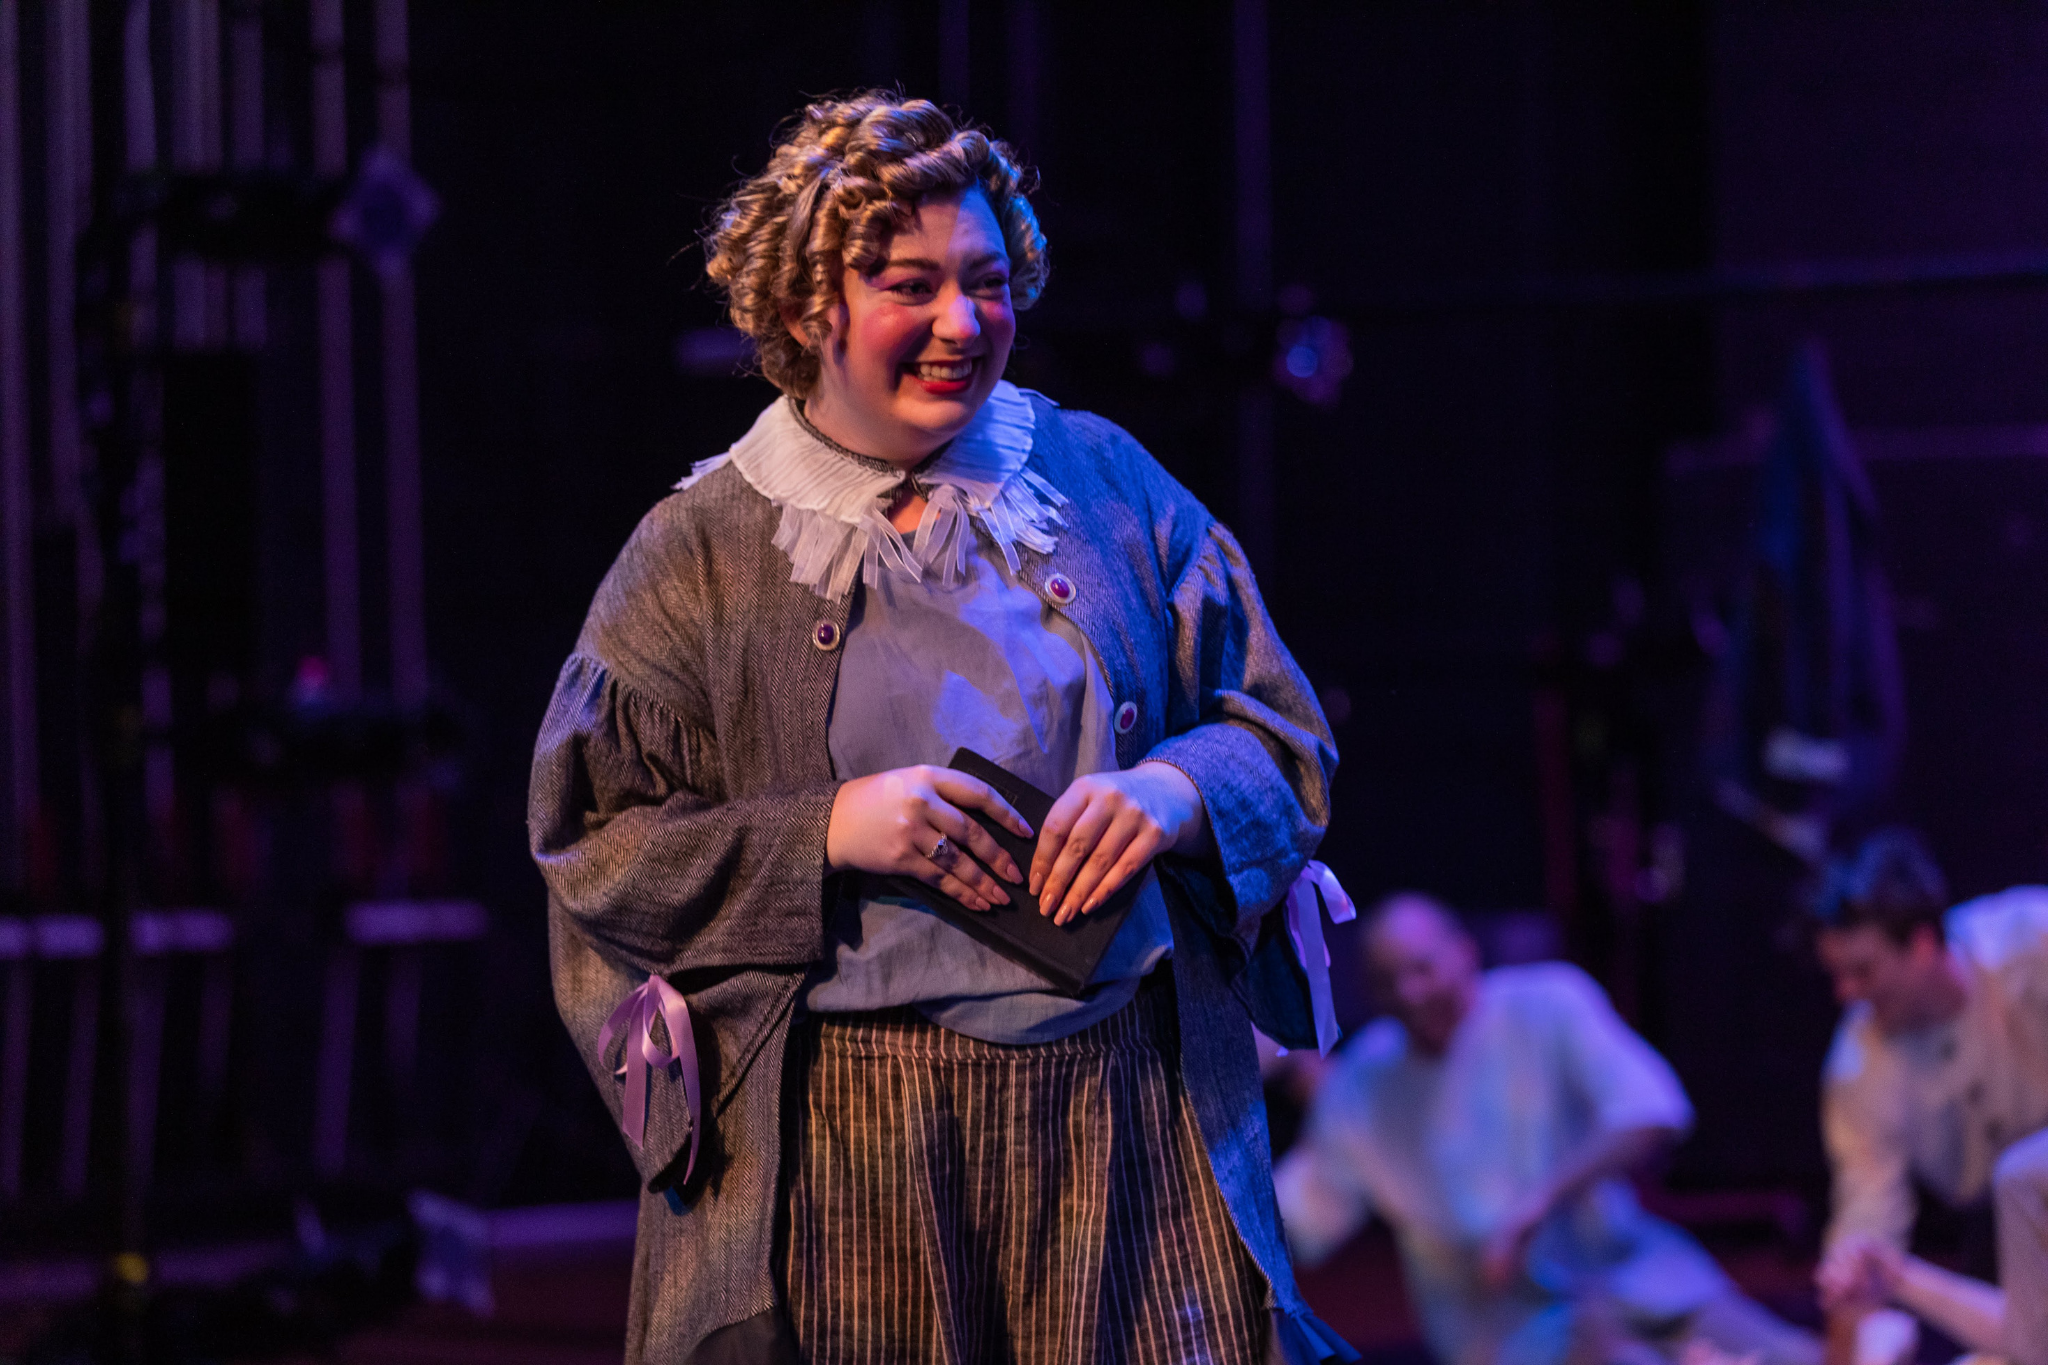 Ashley Knaack (Nurse) in Romeo & Juliet, CSC2, 2019-Photo by Nile Hawver